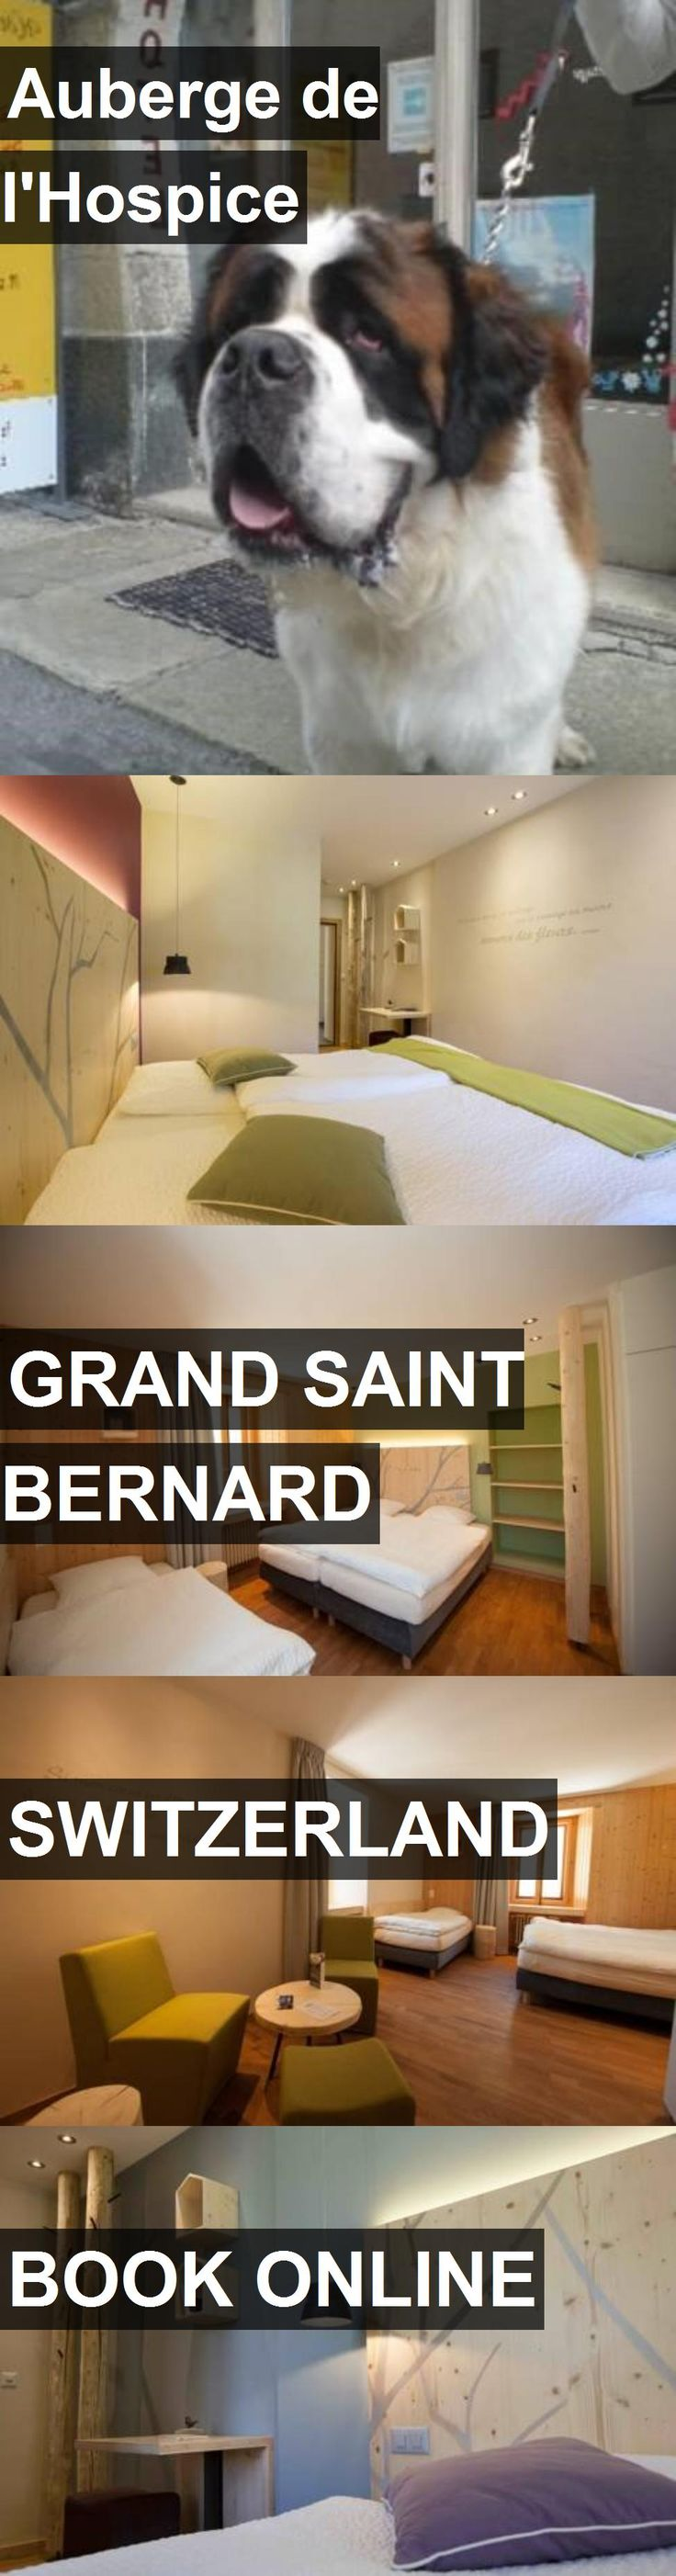 Hotel Auberge de l'Hospice in Grand Saint Bernard, Switzerland. For more information, photos, reviews and best prices please follow the link. #Switzerland #GrandSaintBernard #Aubergedel'Hospice #hotel #travel #vacation